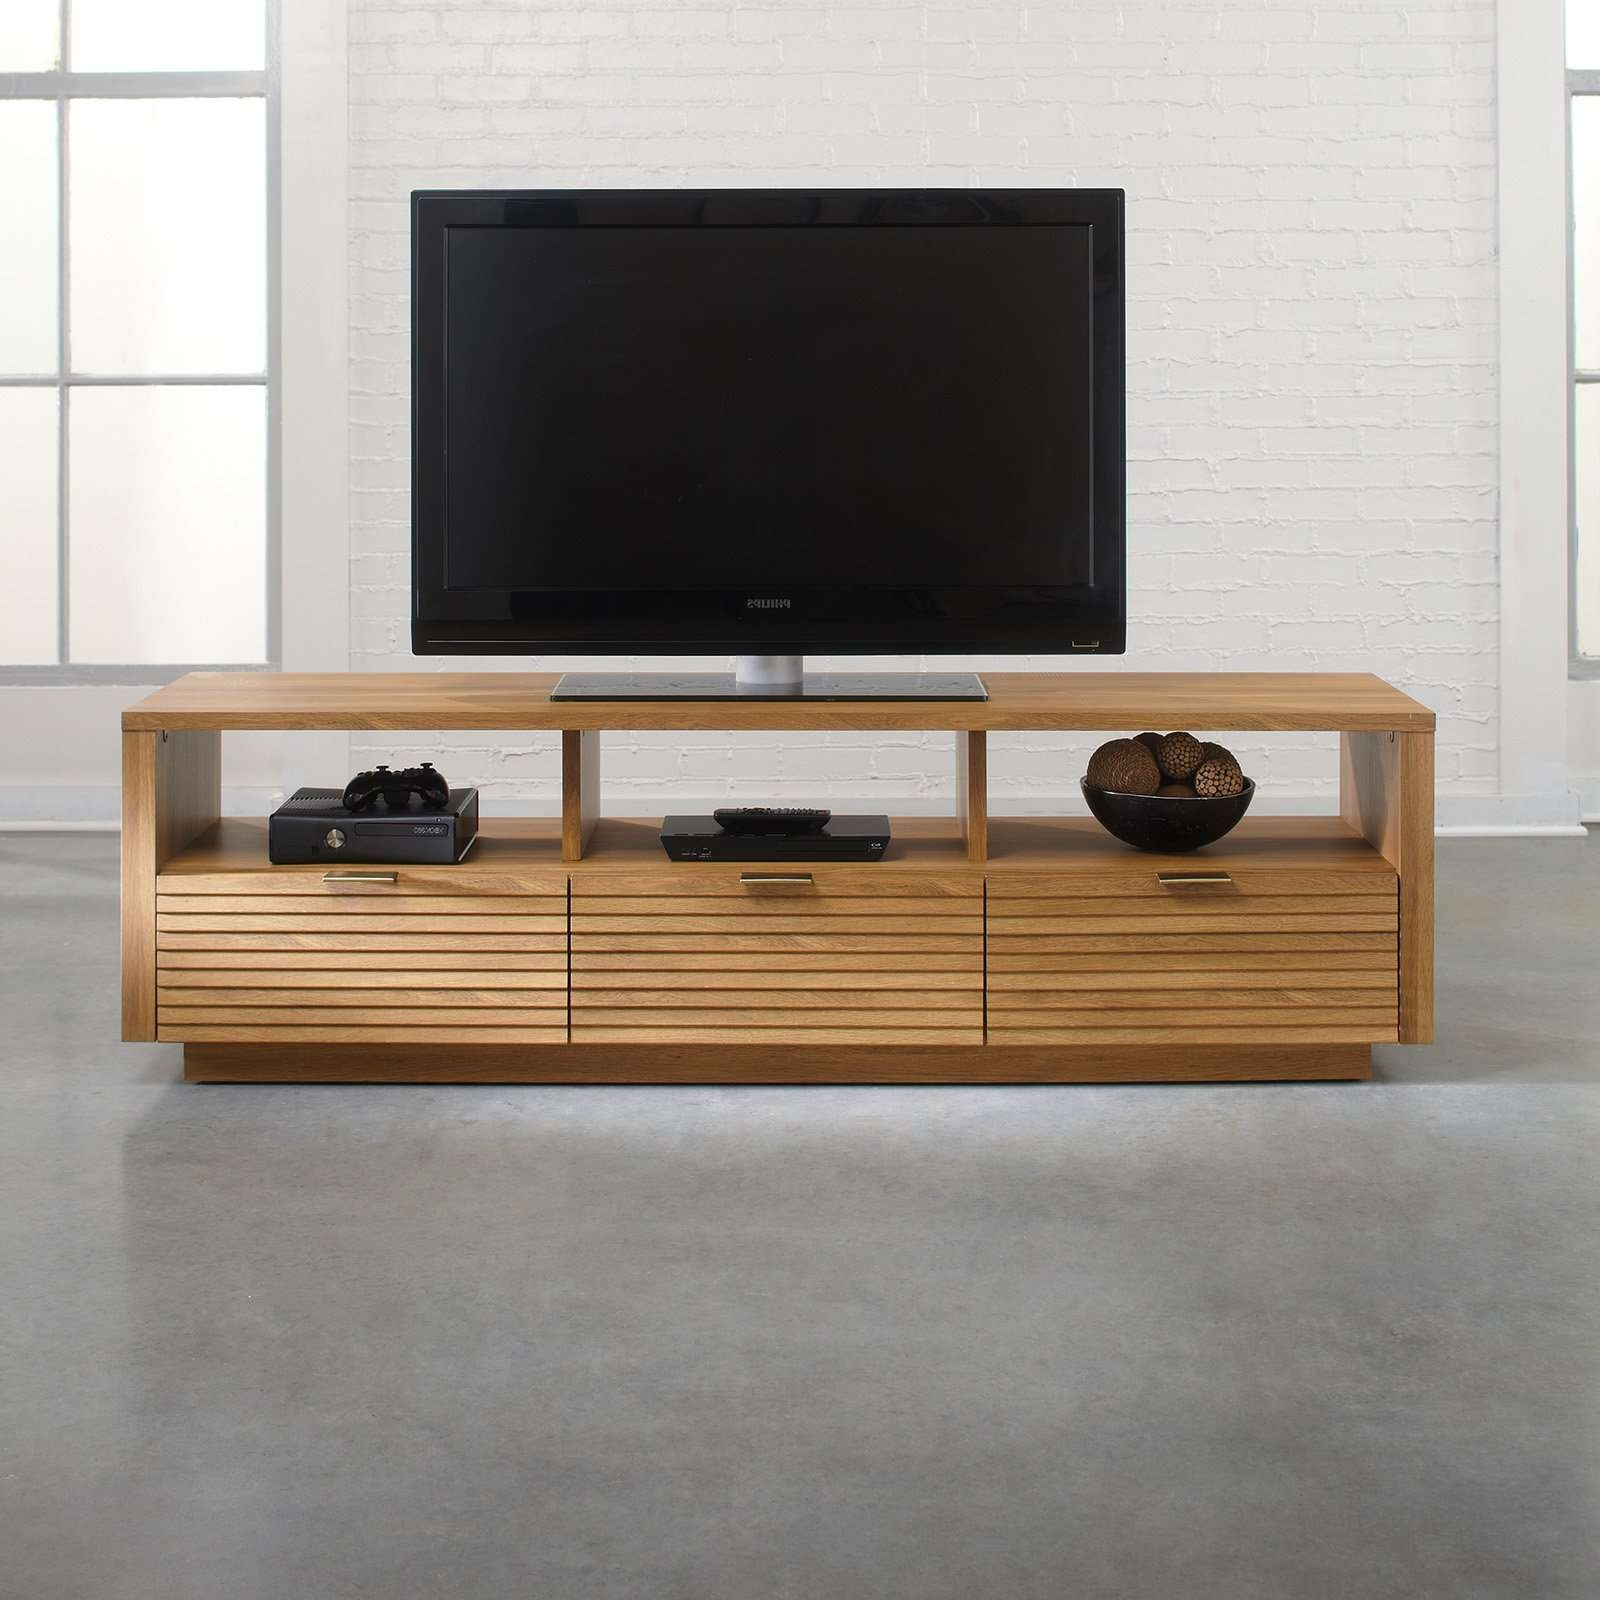 Good Hokku Designs Tv Stand 63 On Home Improvement Ideas With Throughout Hokku Tv Stands (Gallery 2 of 15)